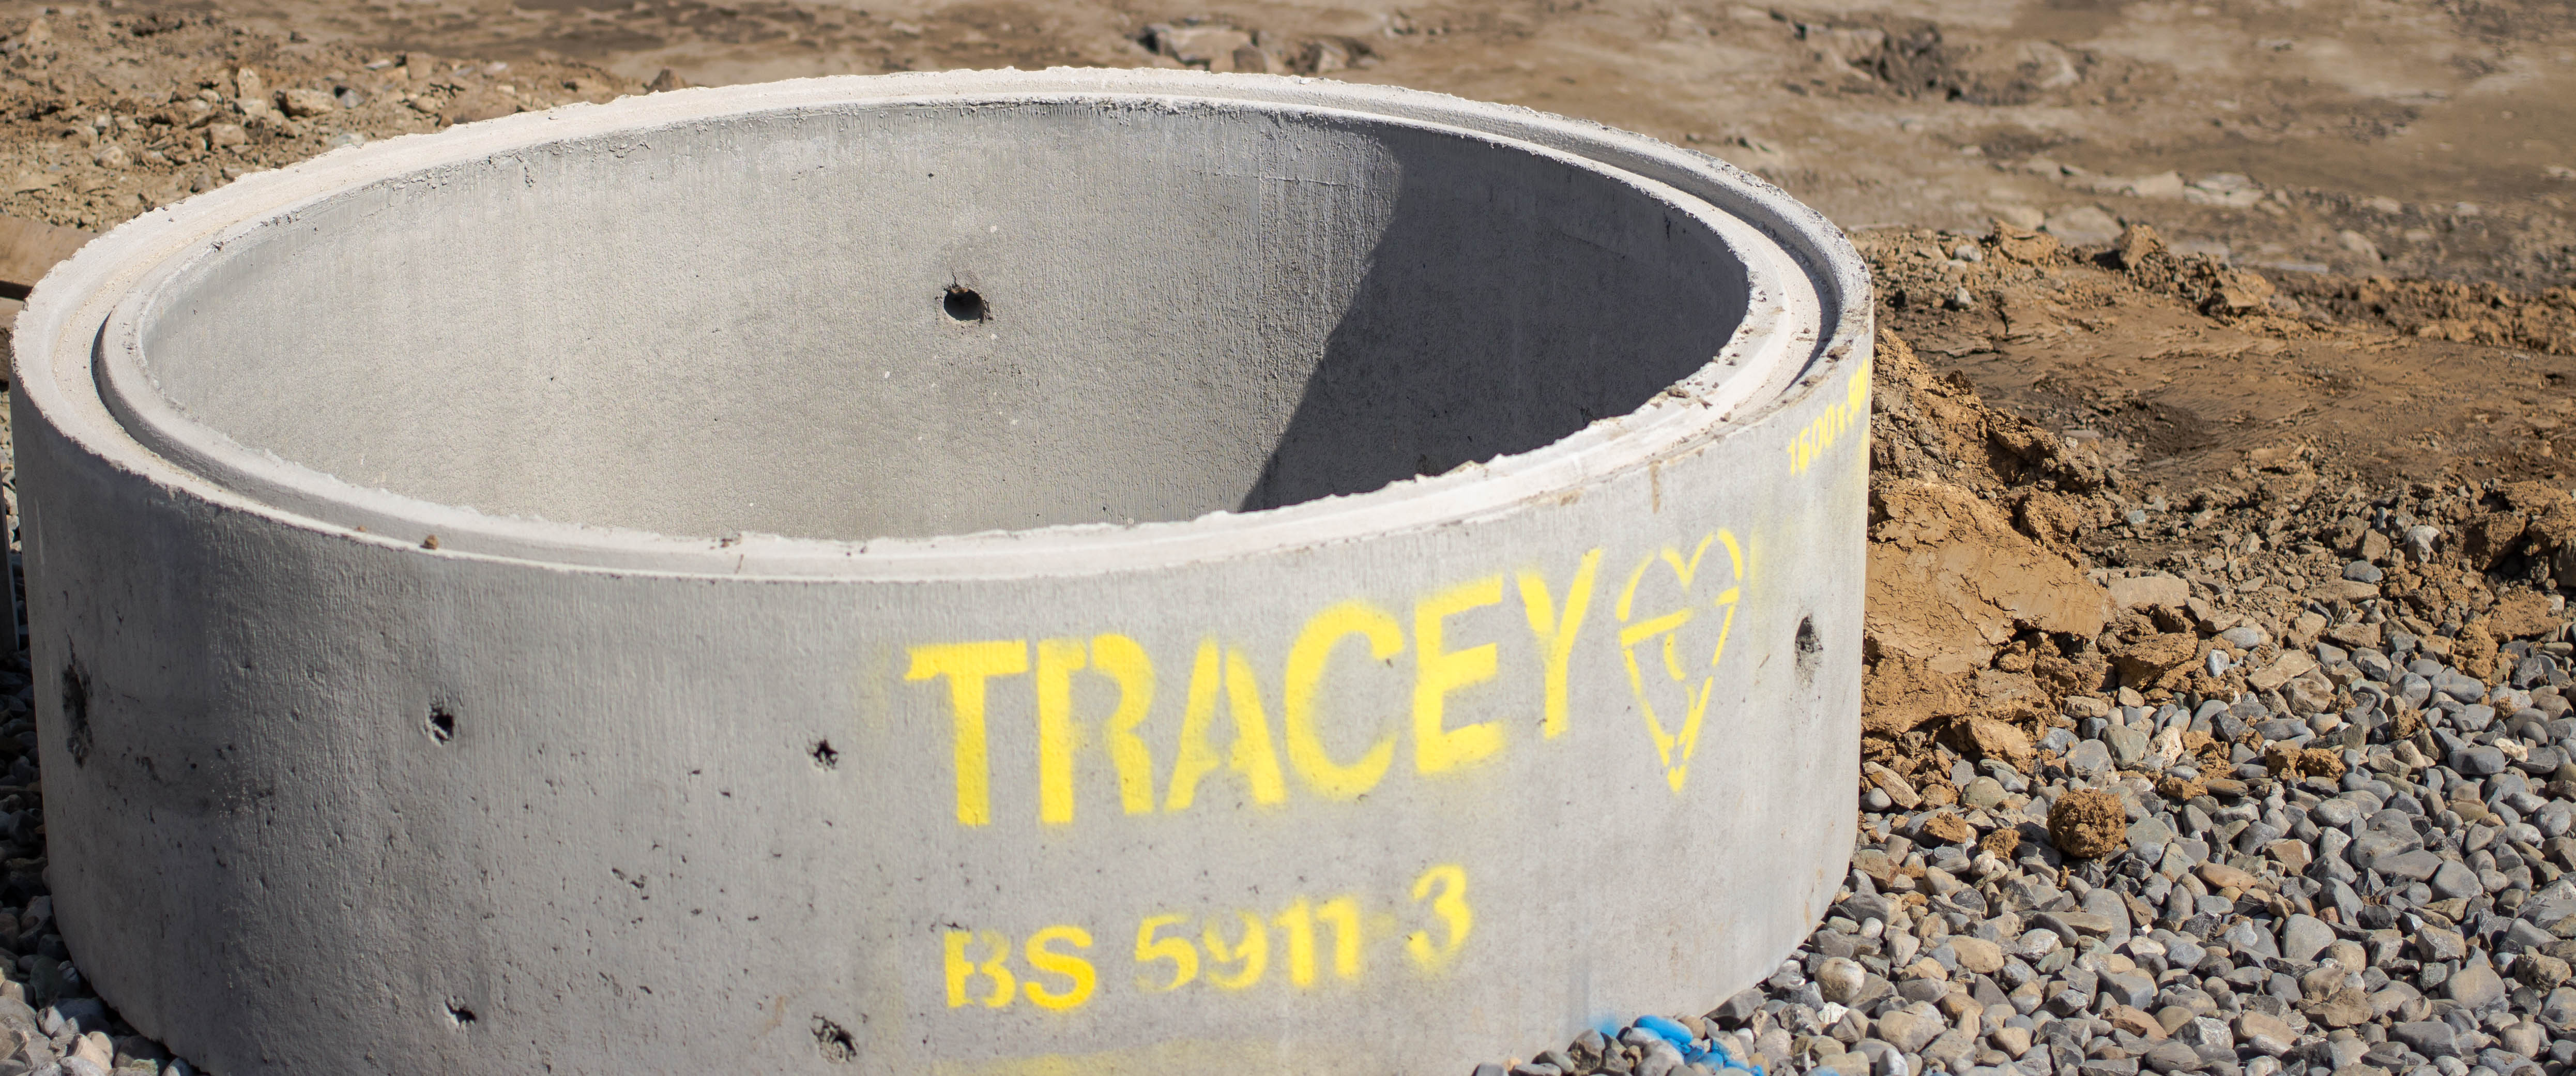 Manhole Ring Sizes Weights Amp Accessories Tracey Concrete